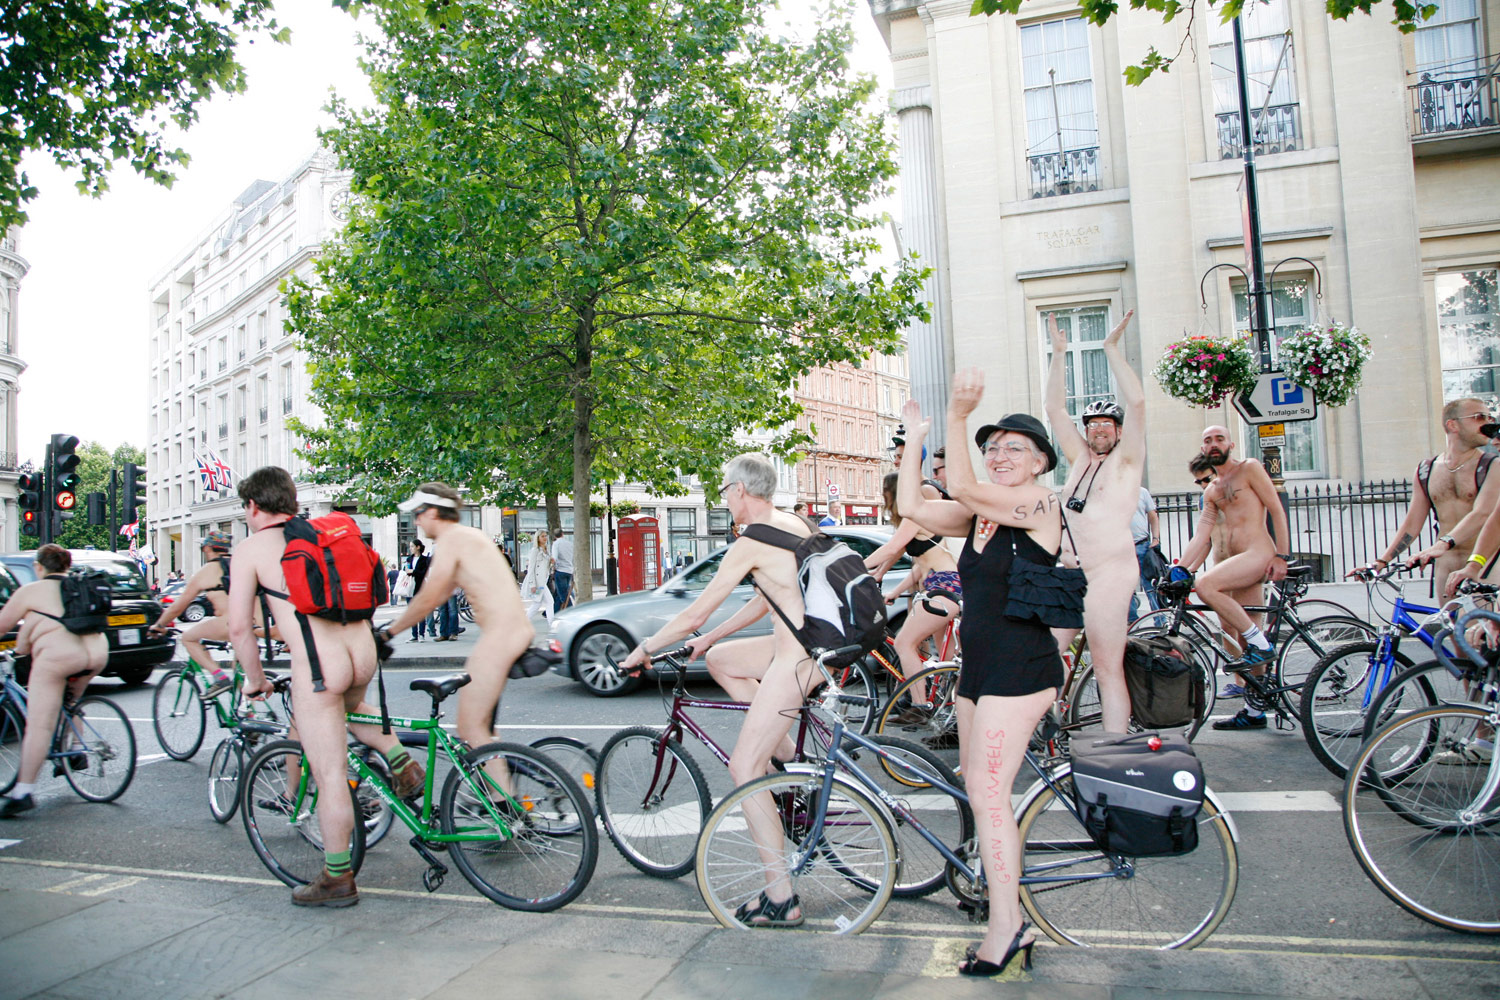 And then the naked cyclists turned up, of course. I love London!